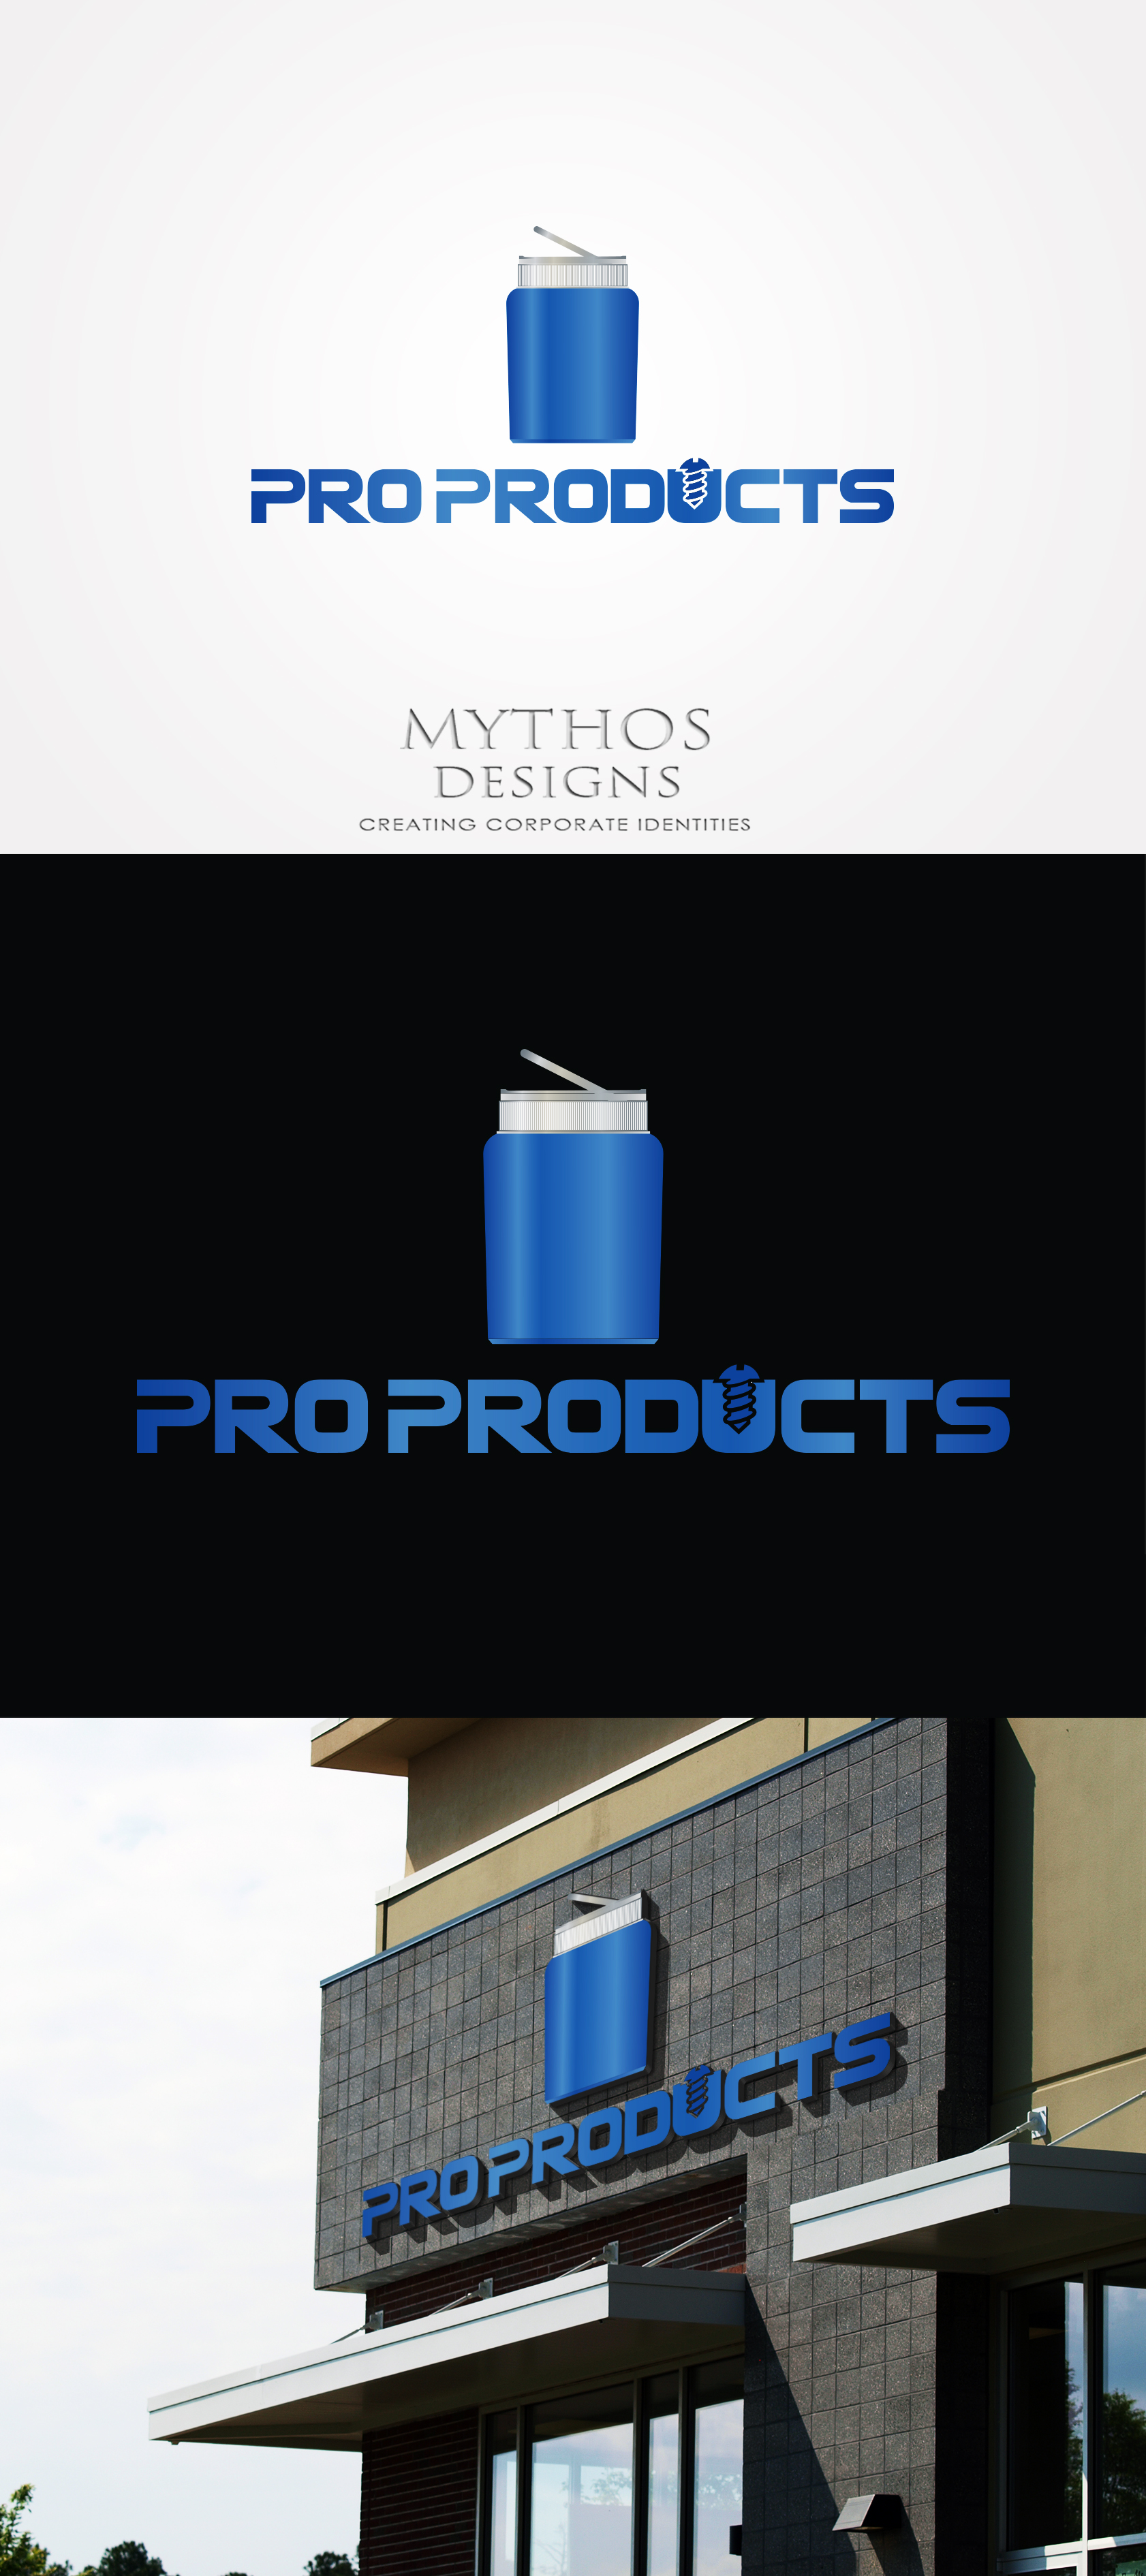 Logo Design by Mythos Designs - Entry No. 33 in the Logo Design Contest Fun yet Professional Logo Design for ProProducts.